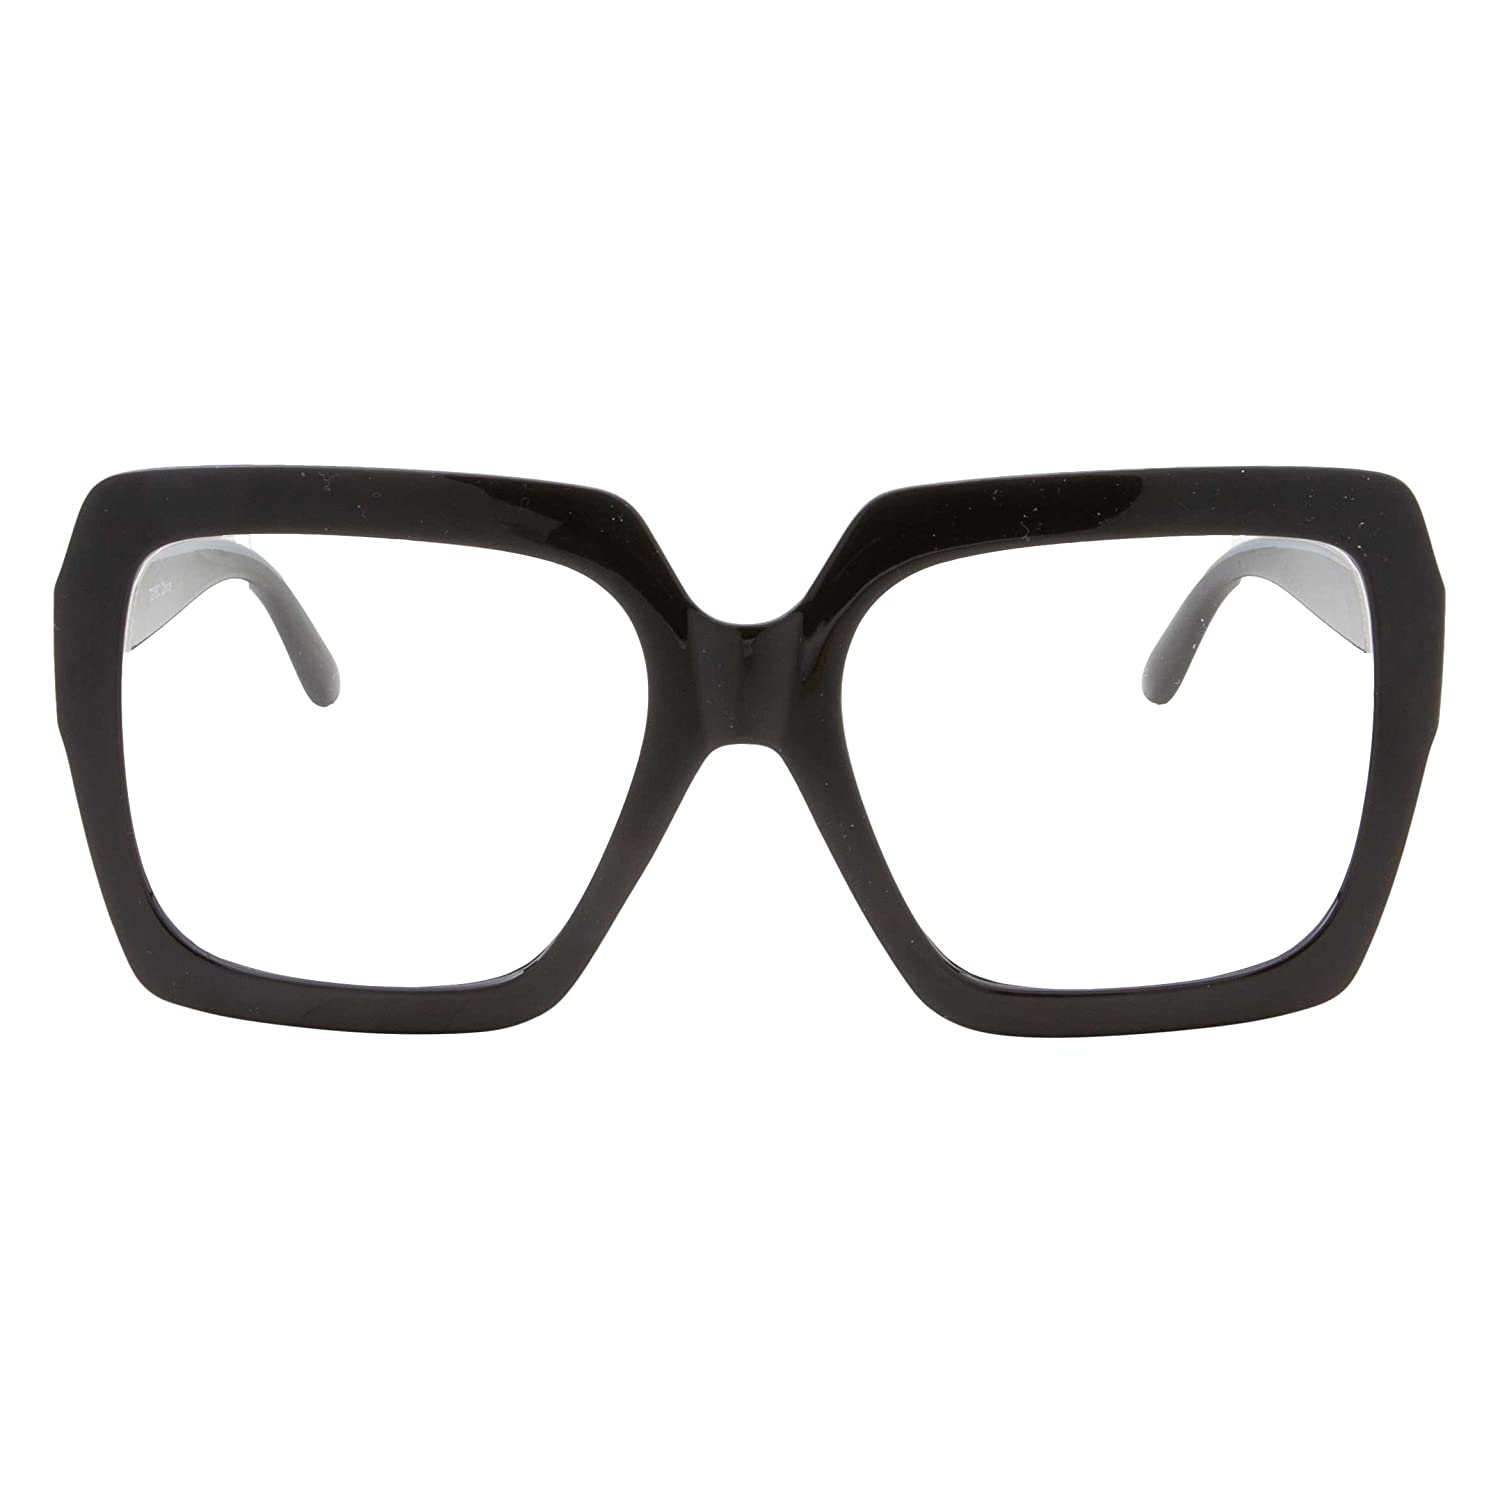 6c6cd71fef Amazon.com  XL Black Thick Square Oversized Clear Lens Glasses - Men and  Women Costume or Fashion (Black)  Clothing